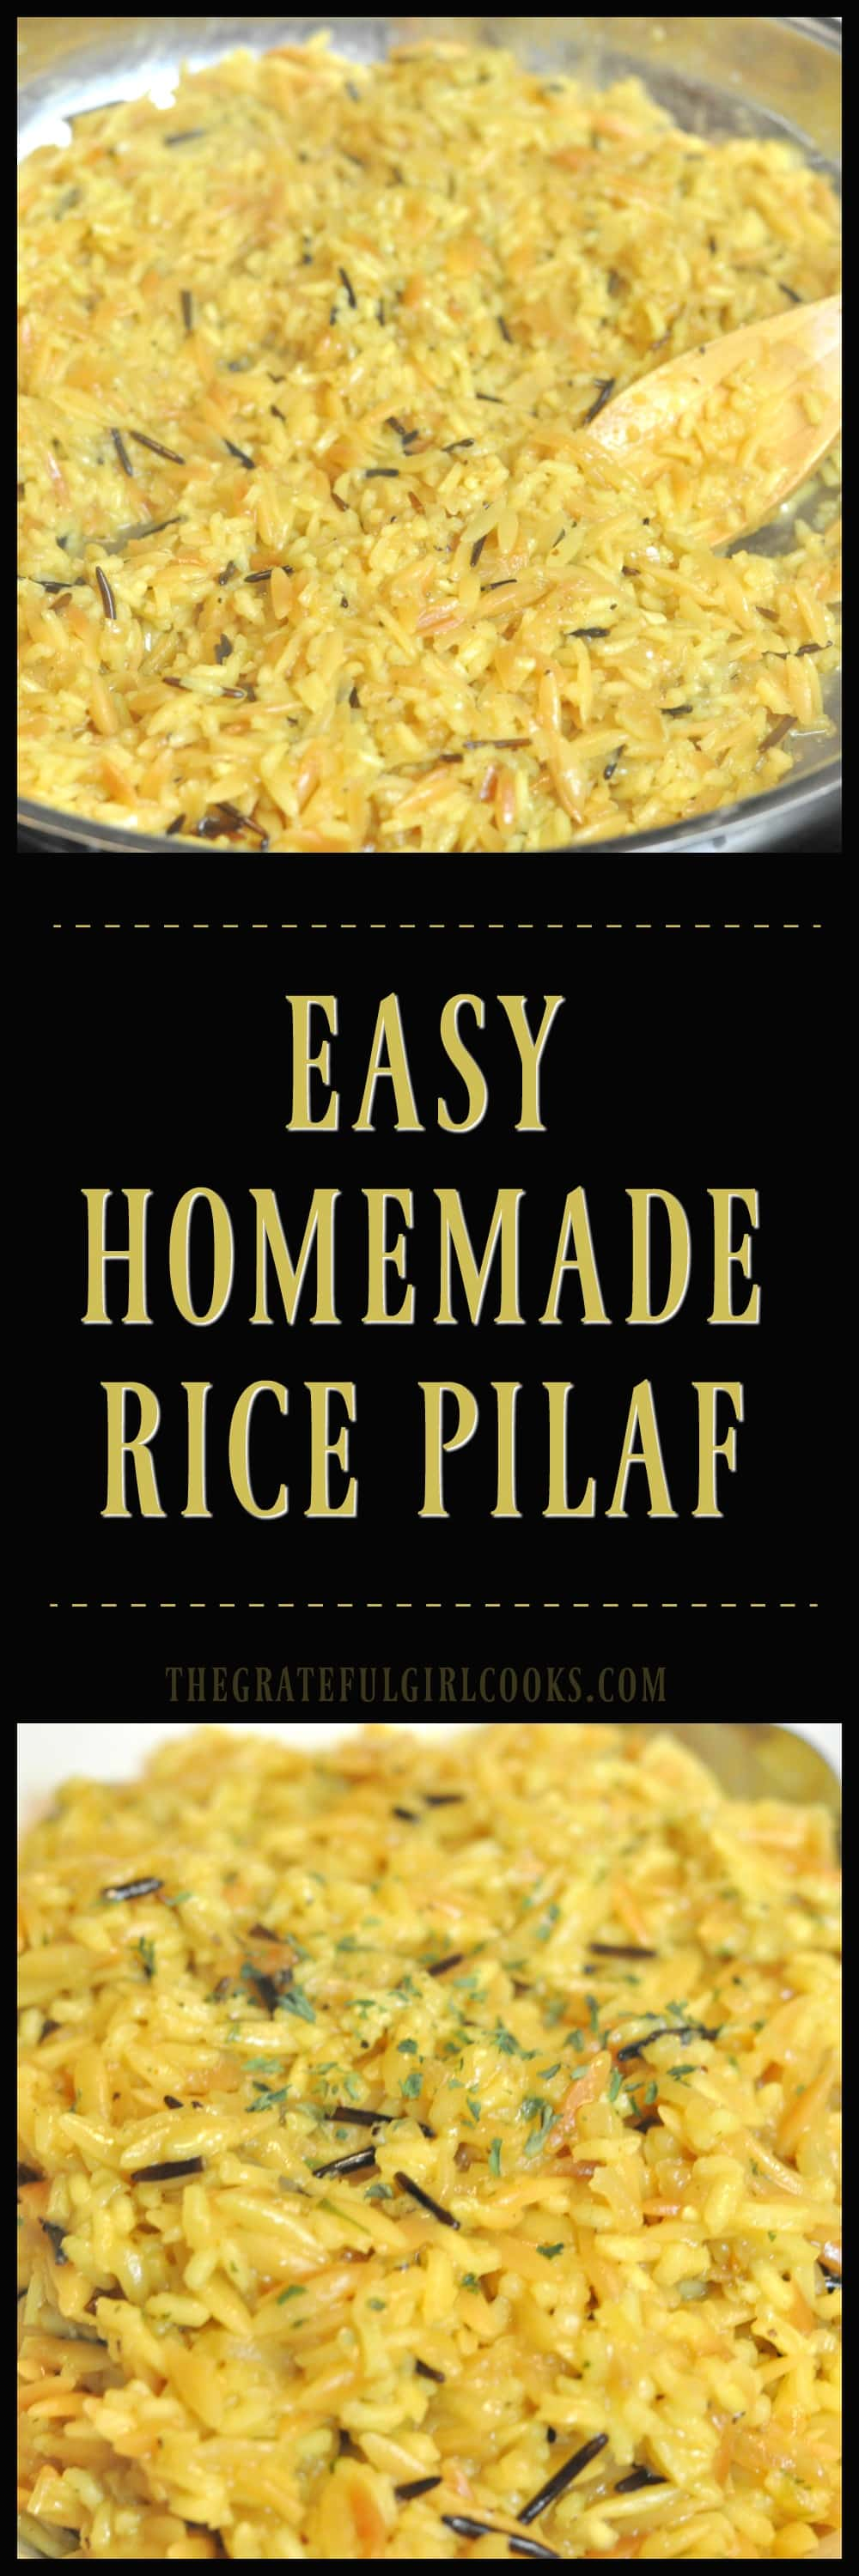 Easy Homemade Rice Pilaf / The Grateful Girl Cooks!